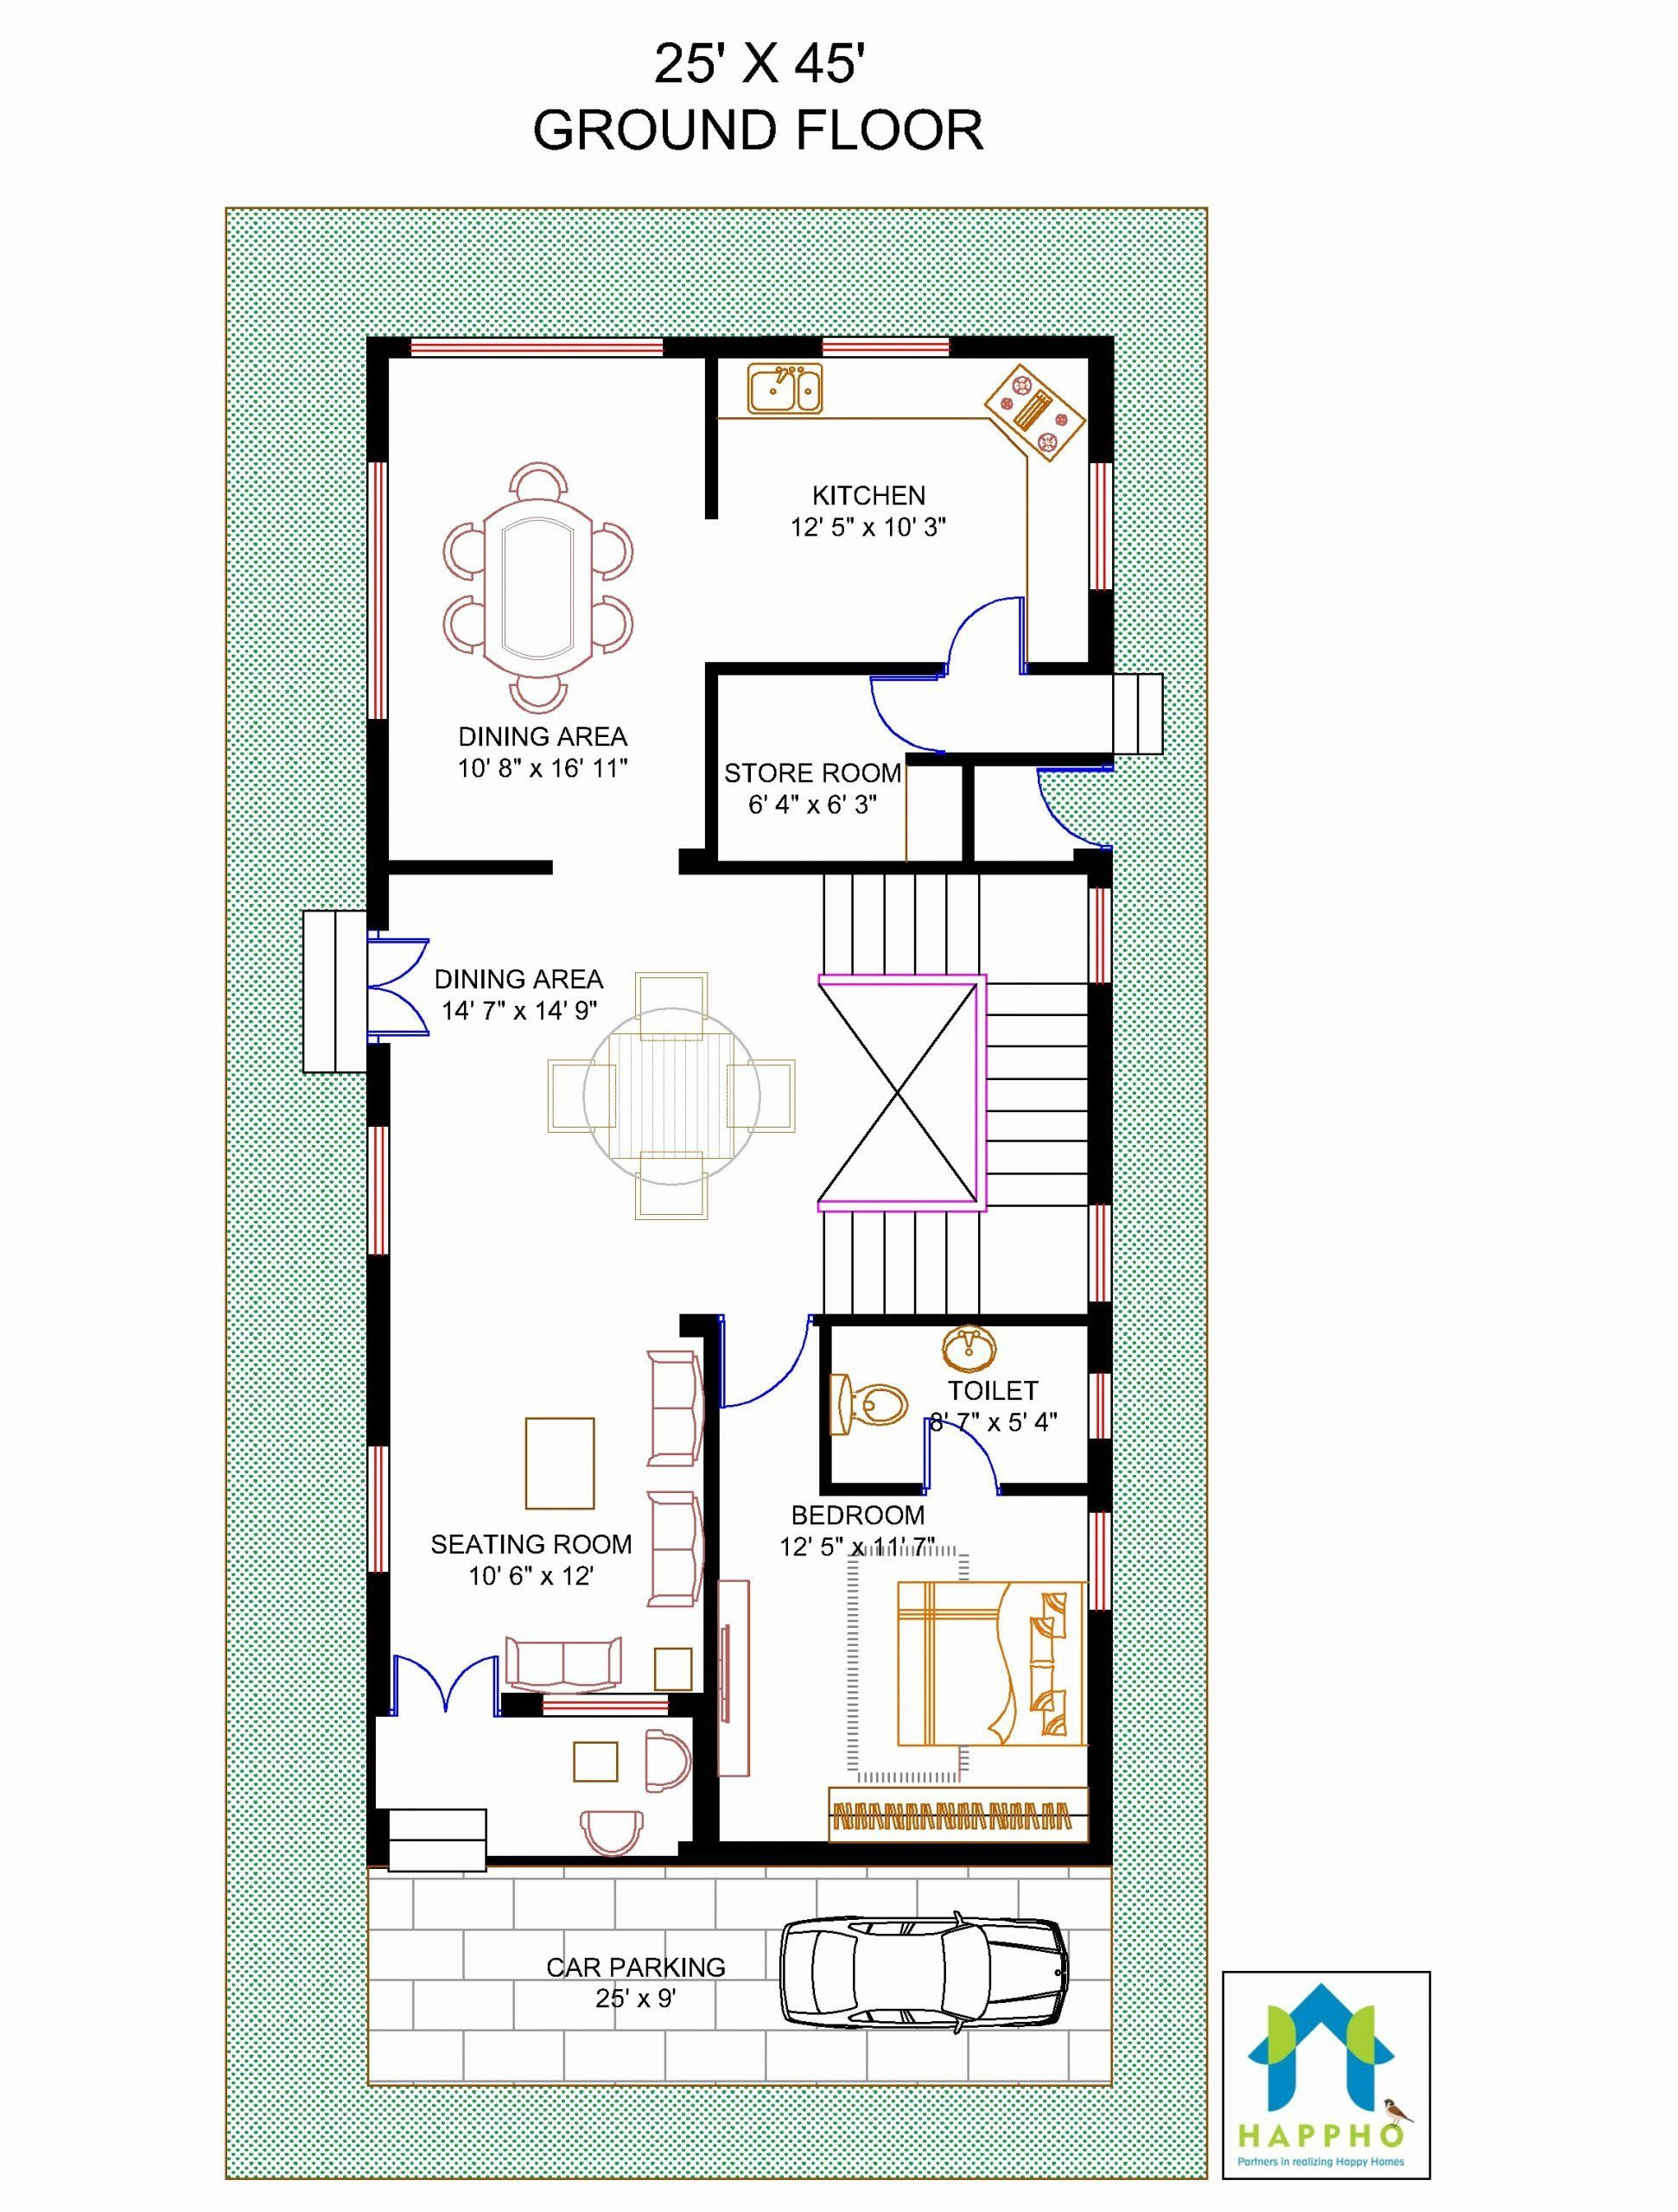 45 Foot Wide House Plans Awesome 24 Unique How Much Does A Hardwood Floor Cost Per Square House Floor Design Garage Floor Plans Modular Home Floor Plans